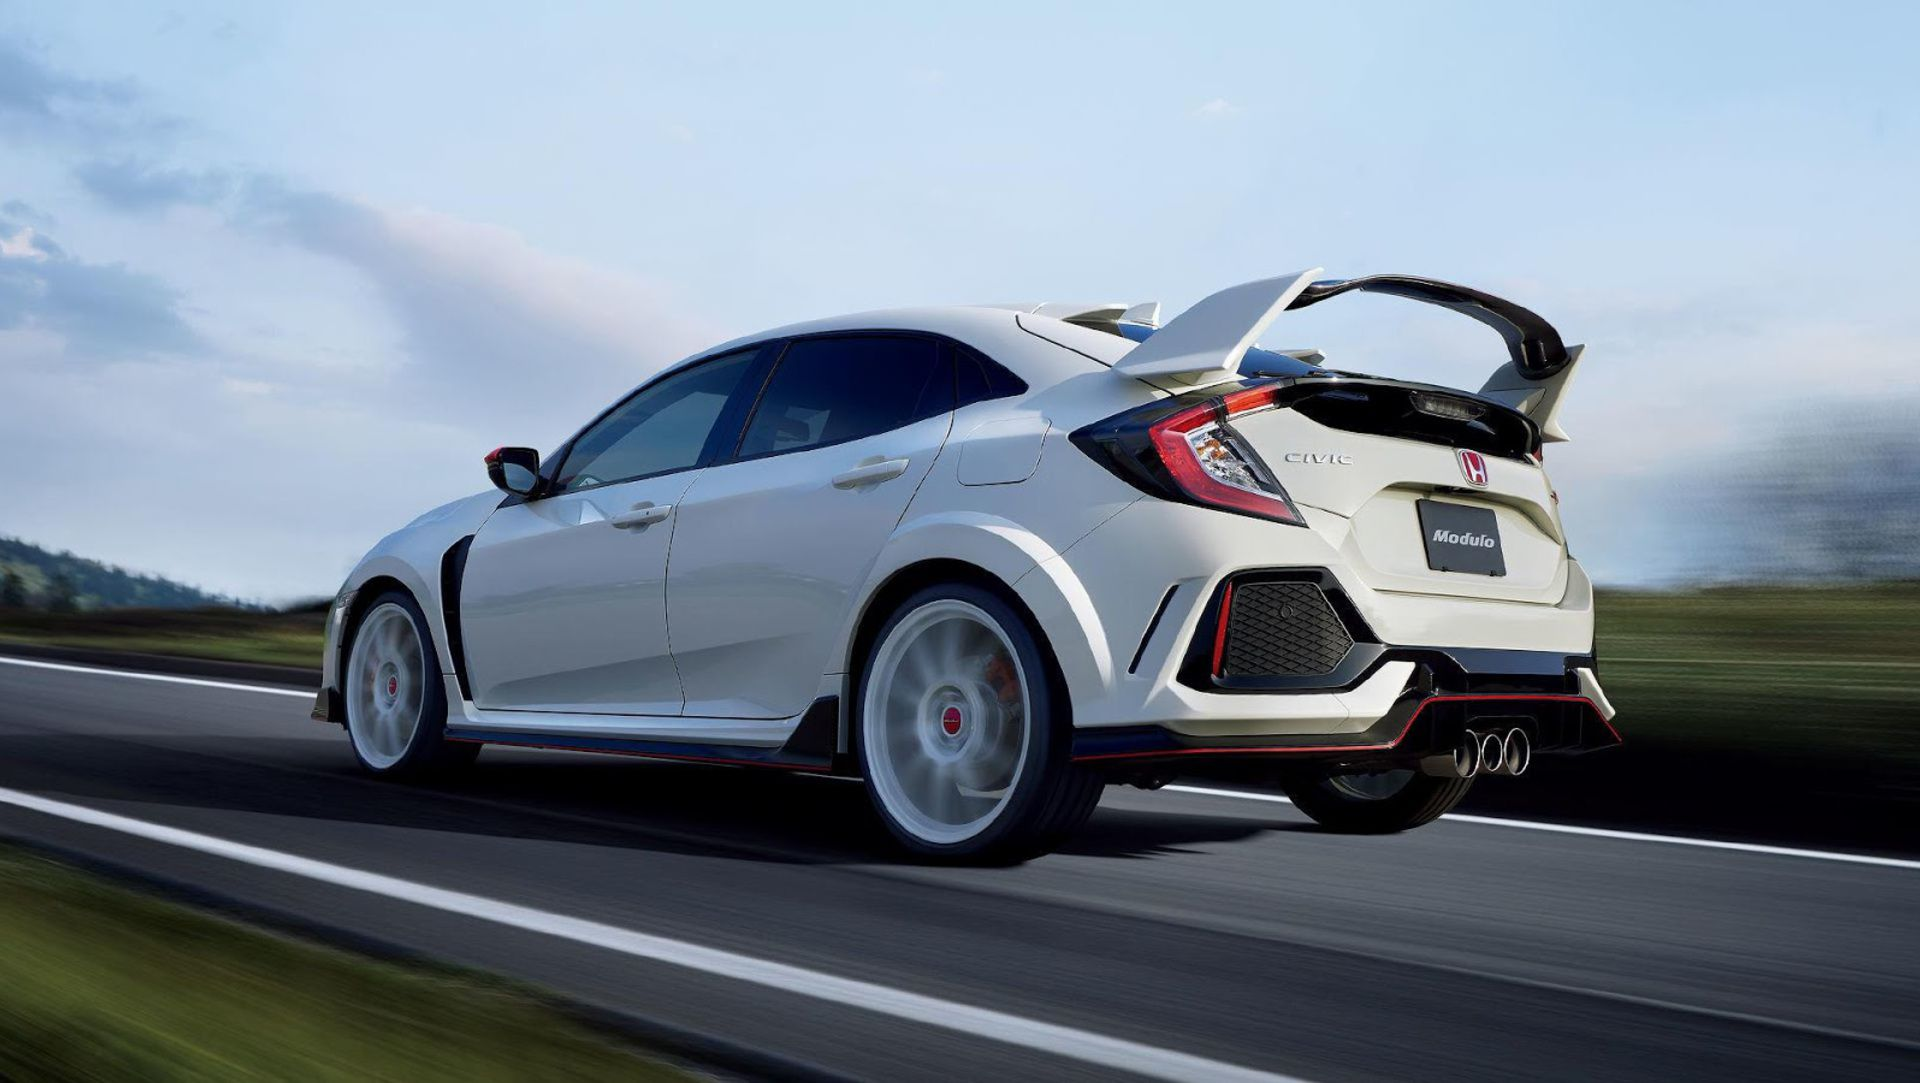 Jdm Honda Civic Type R Accessories Make It Even Wilder Auto Moto Japan Bullet